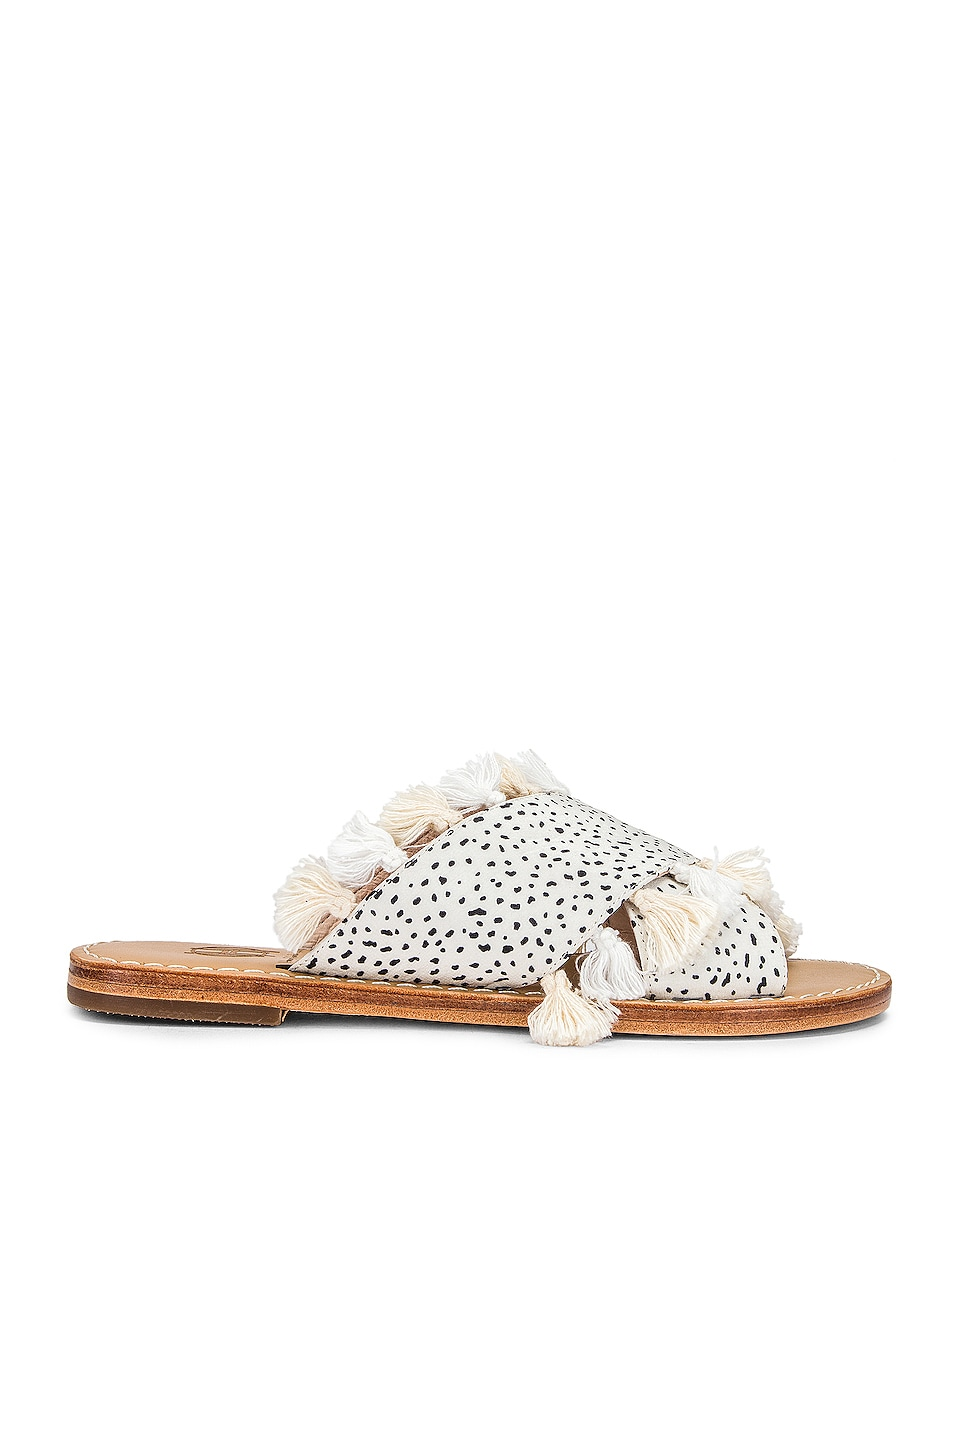 House of Harlow 1960 X REVOLVE Ginny Slide in White Multi